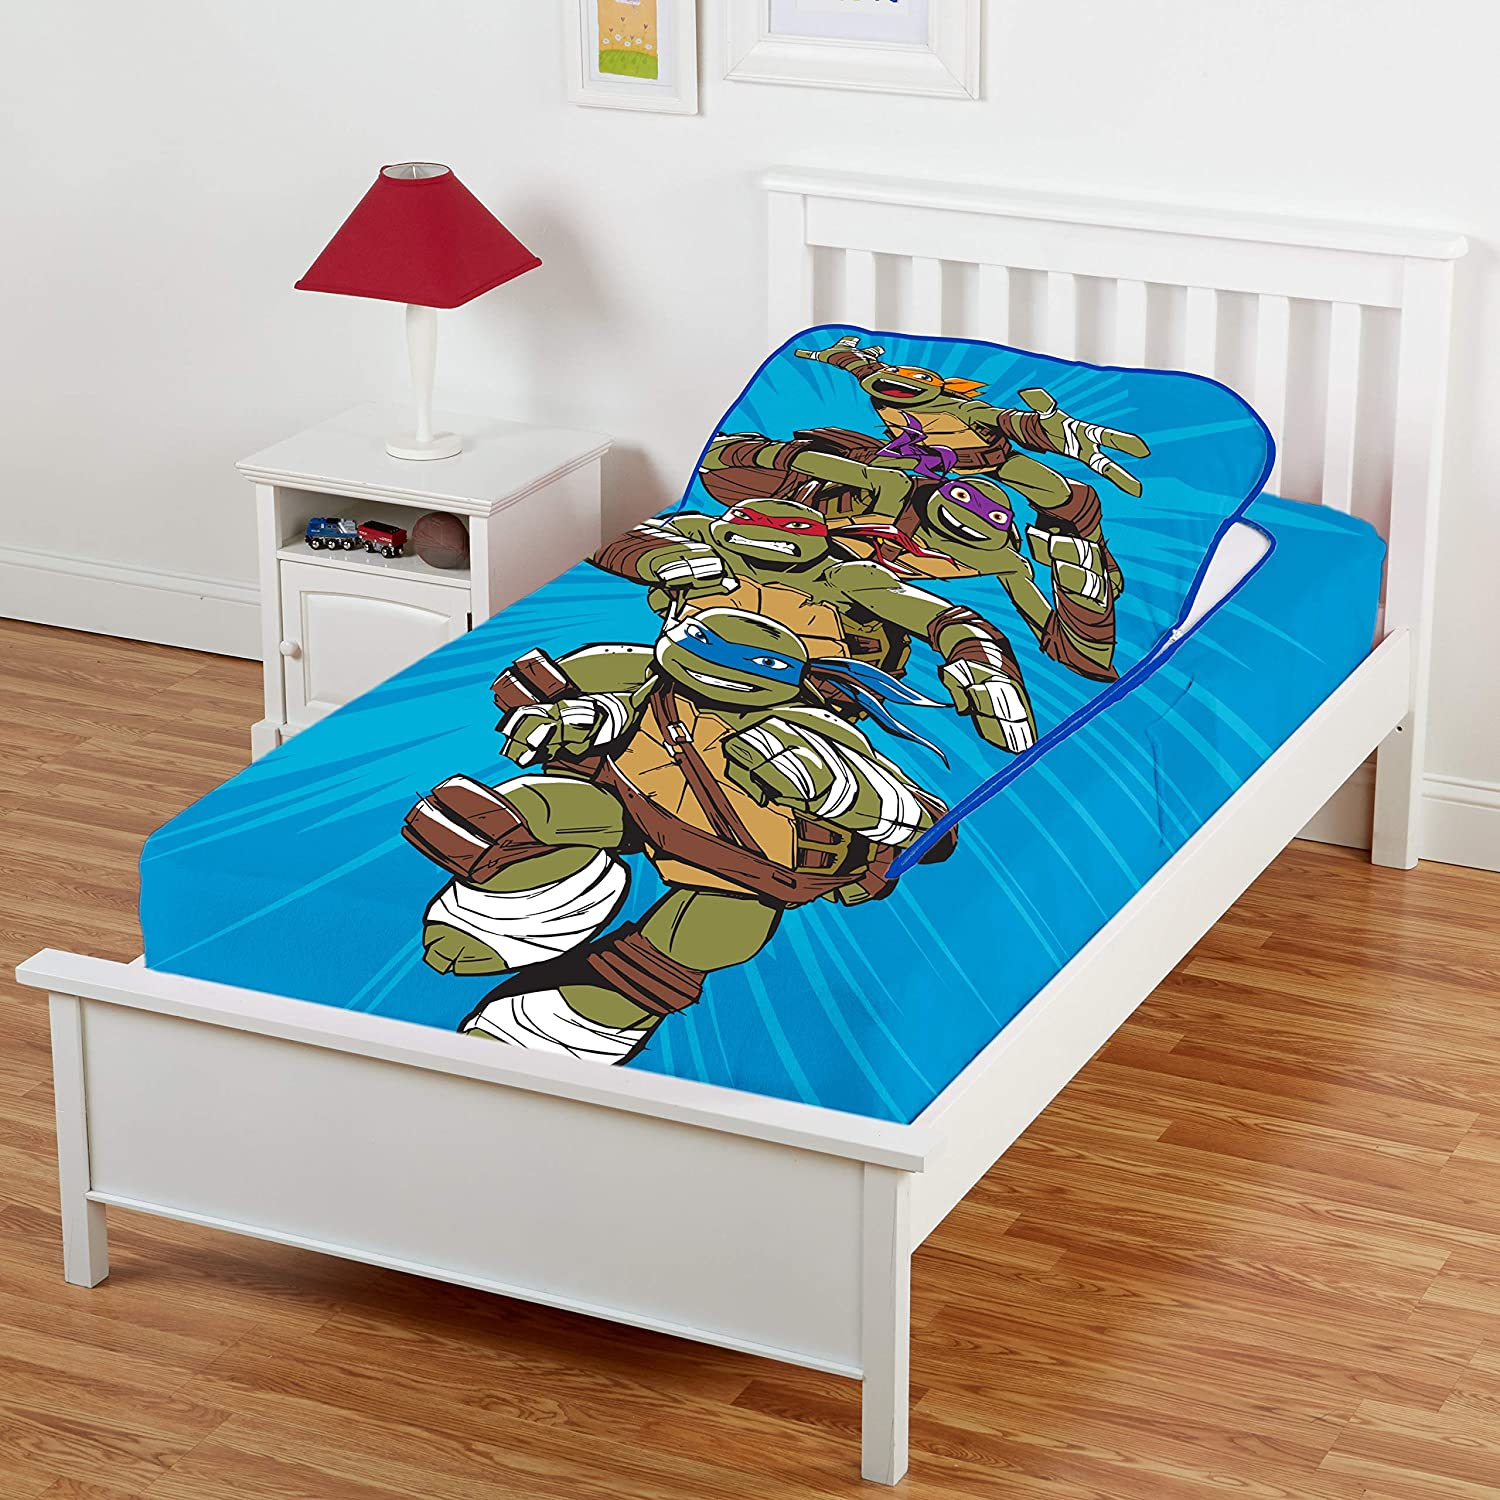 ZippySack - Nickelodeon Teenage Mutant Ninja Turtles (Twin Size)